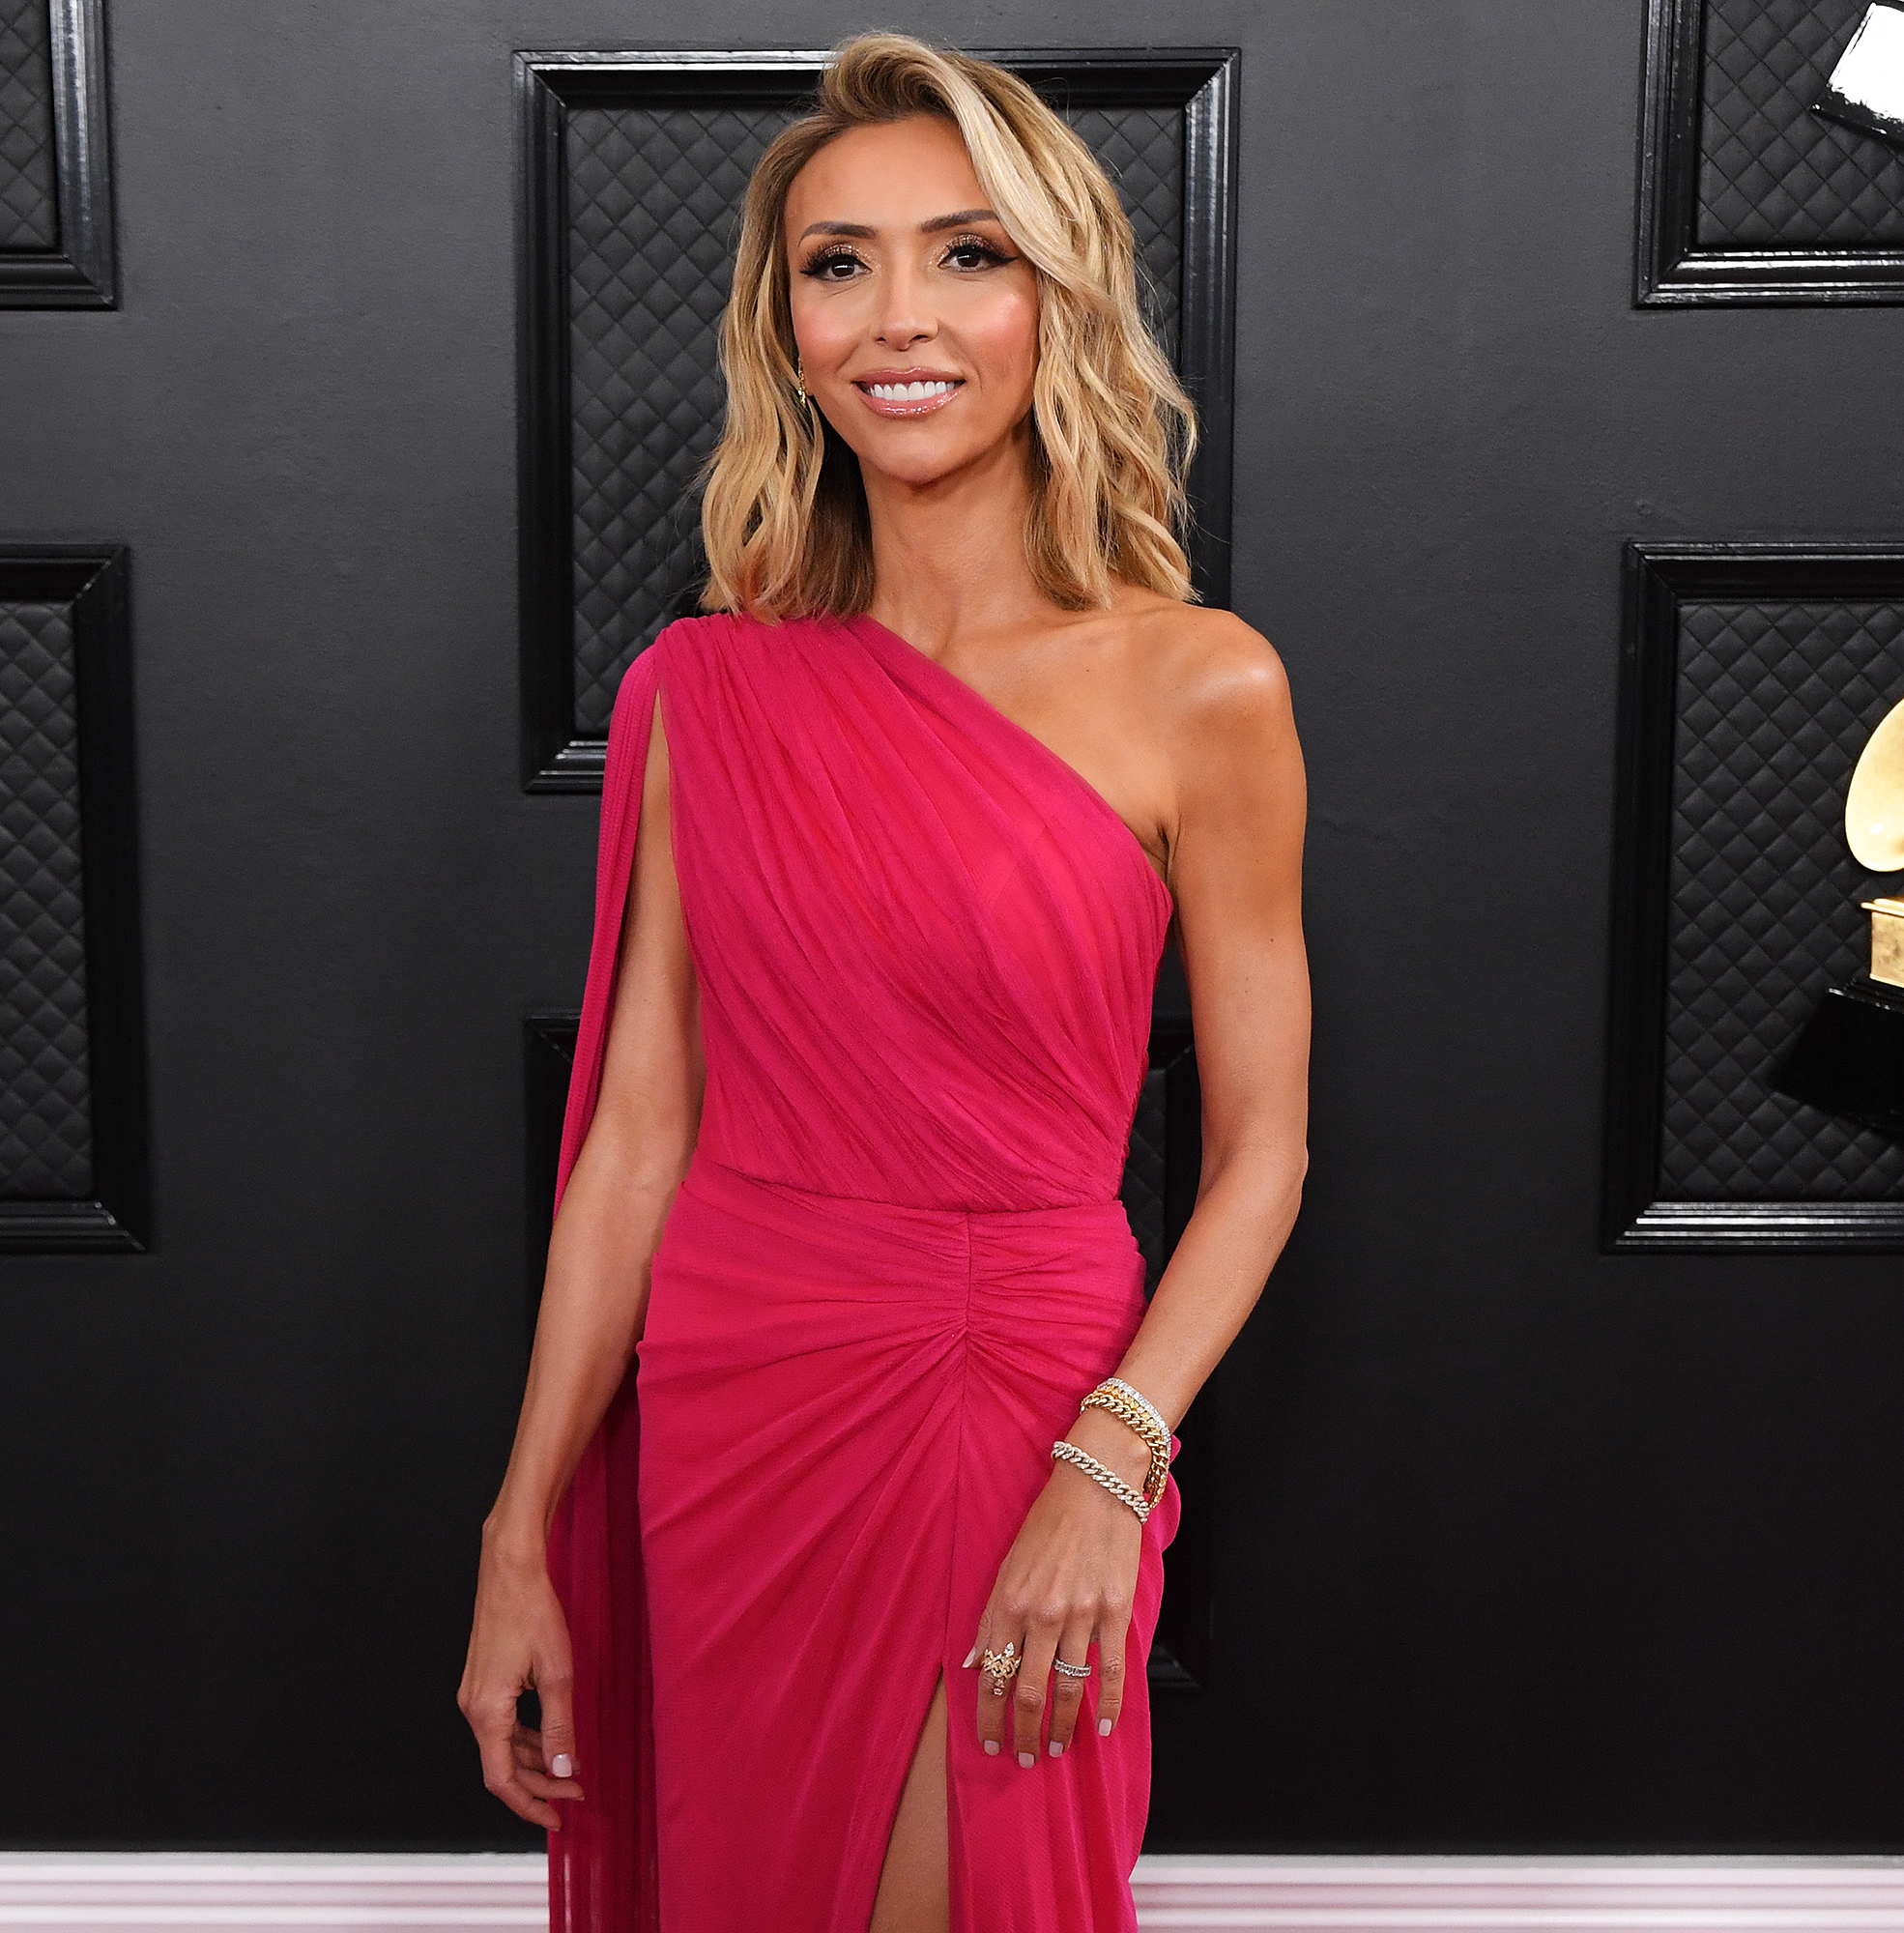 Giuliana Rancic Tests Positive for COVID, Skips Emmys Red Carpet